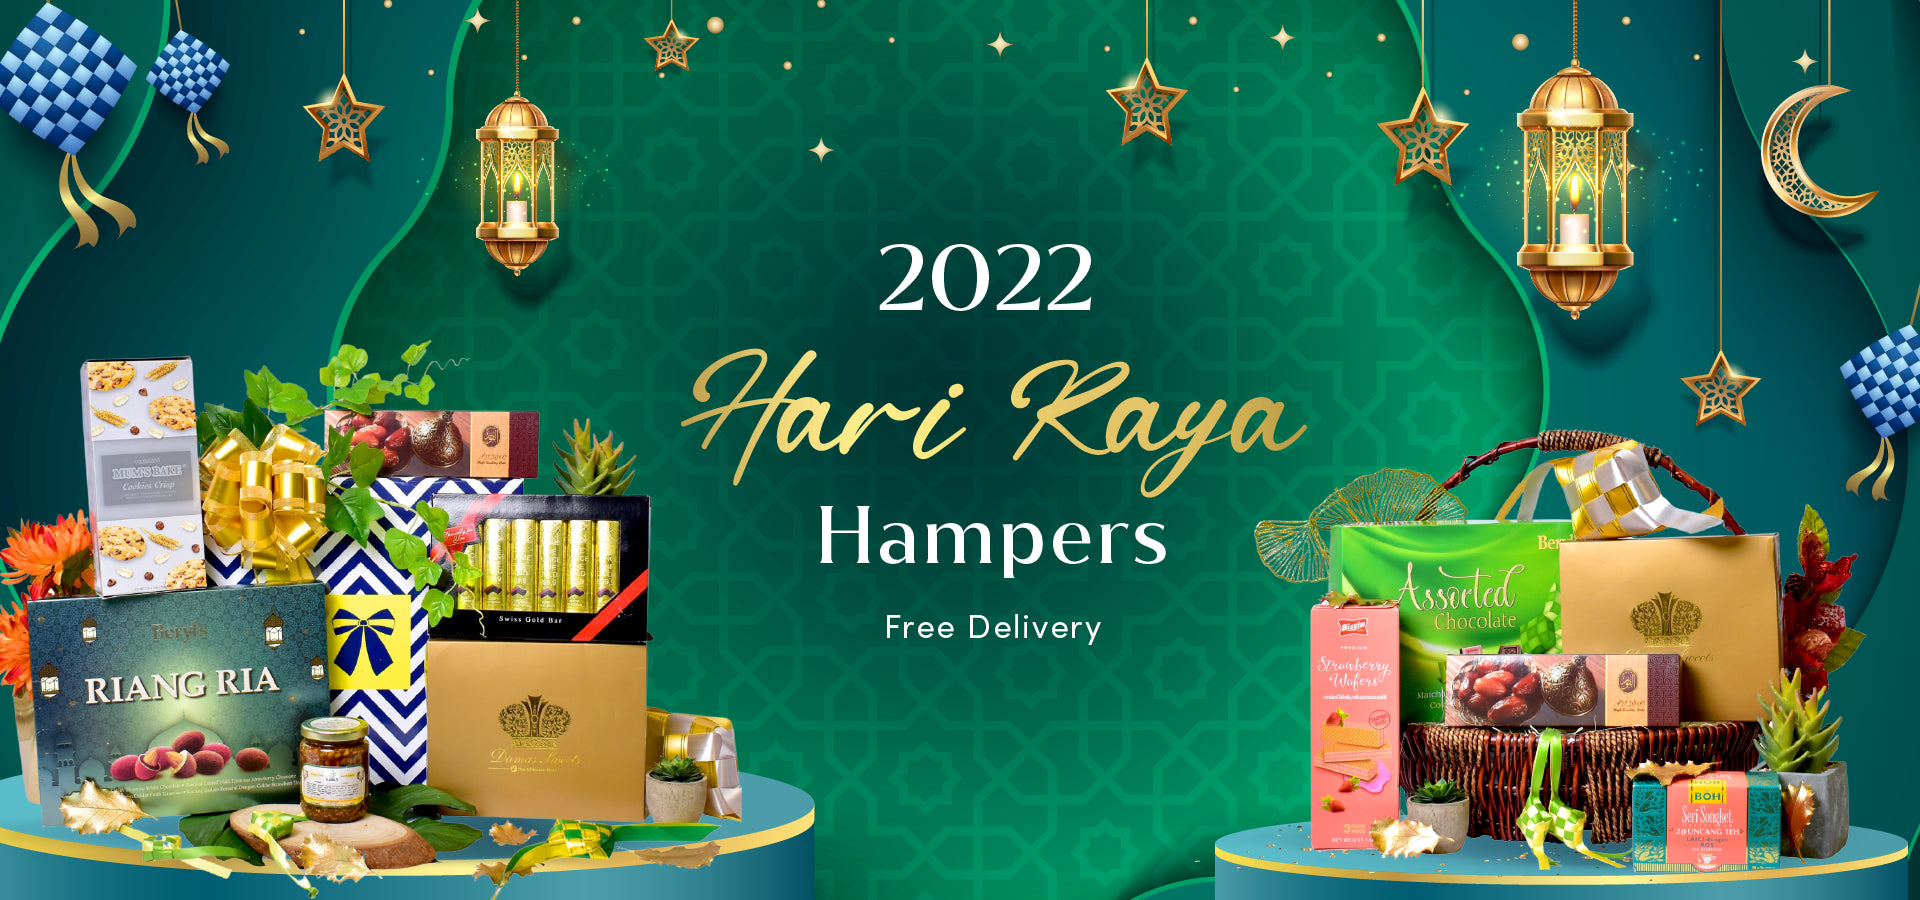 Wellness Hampers Banner